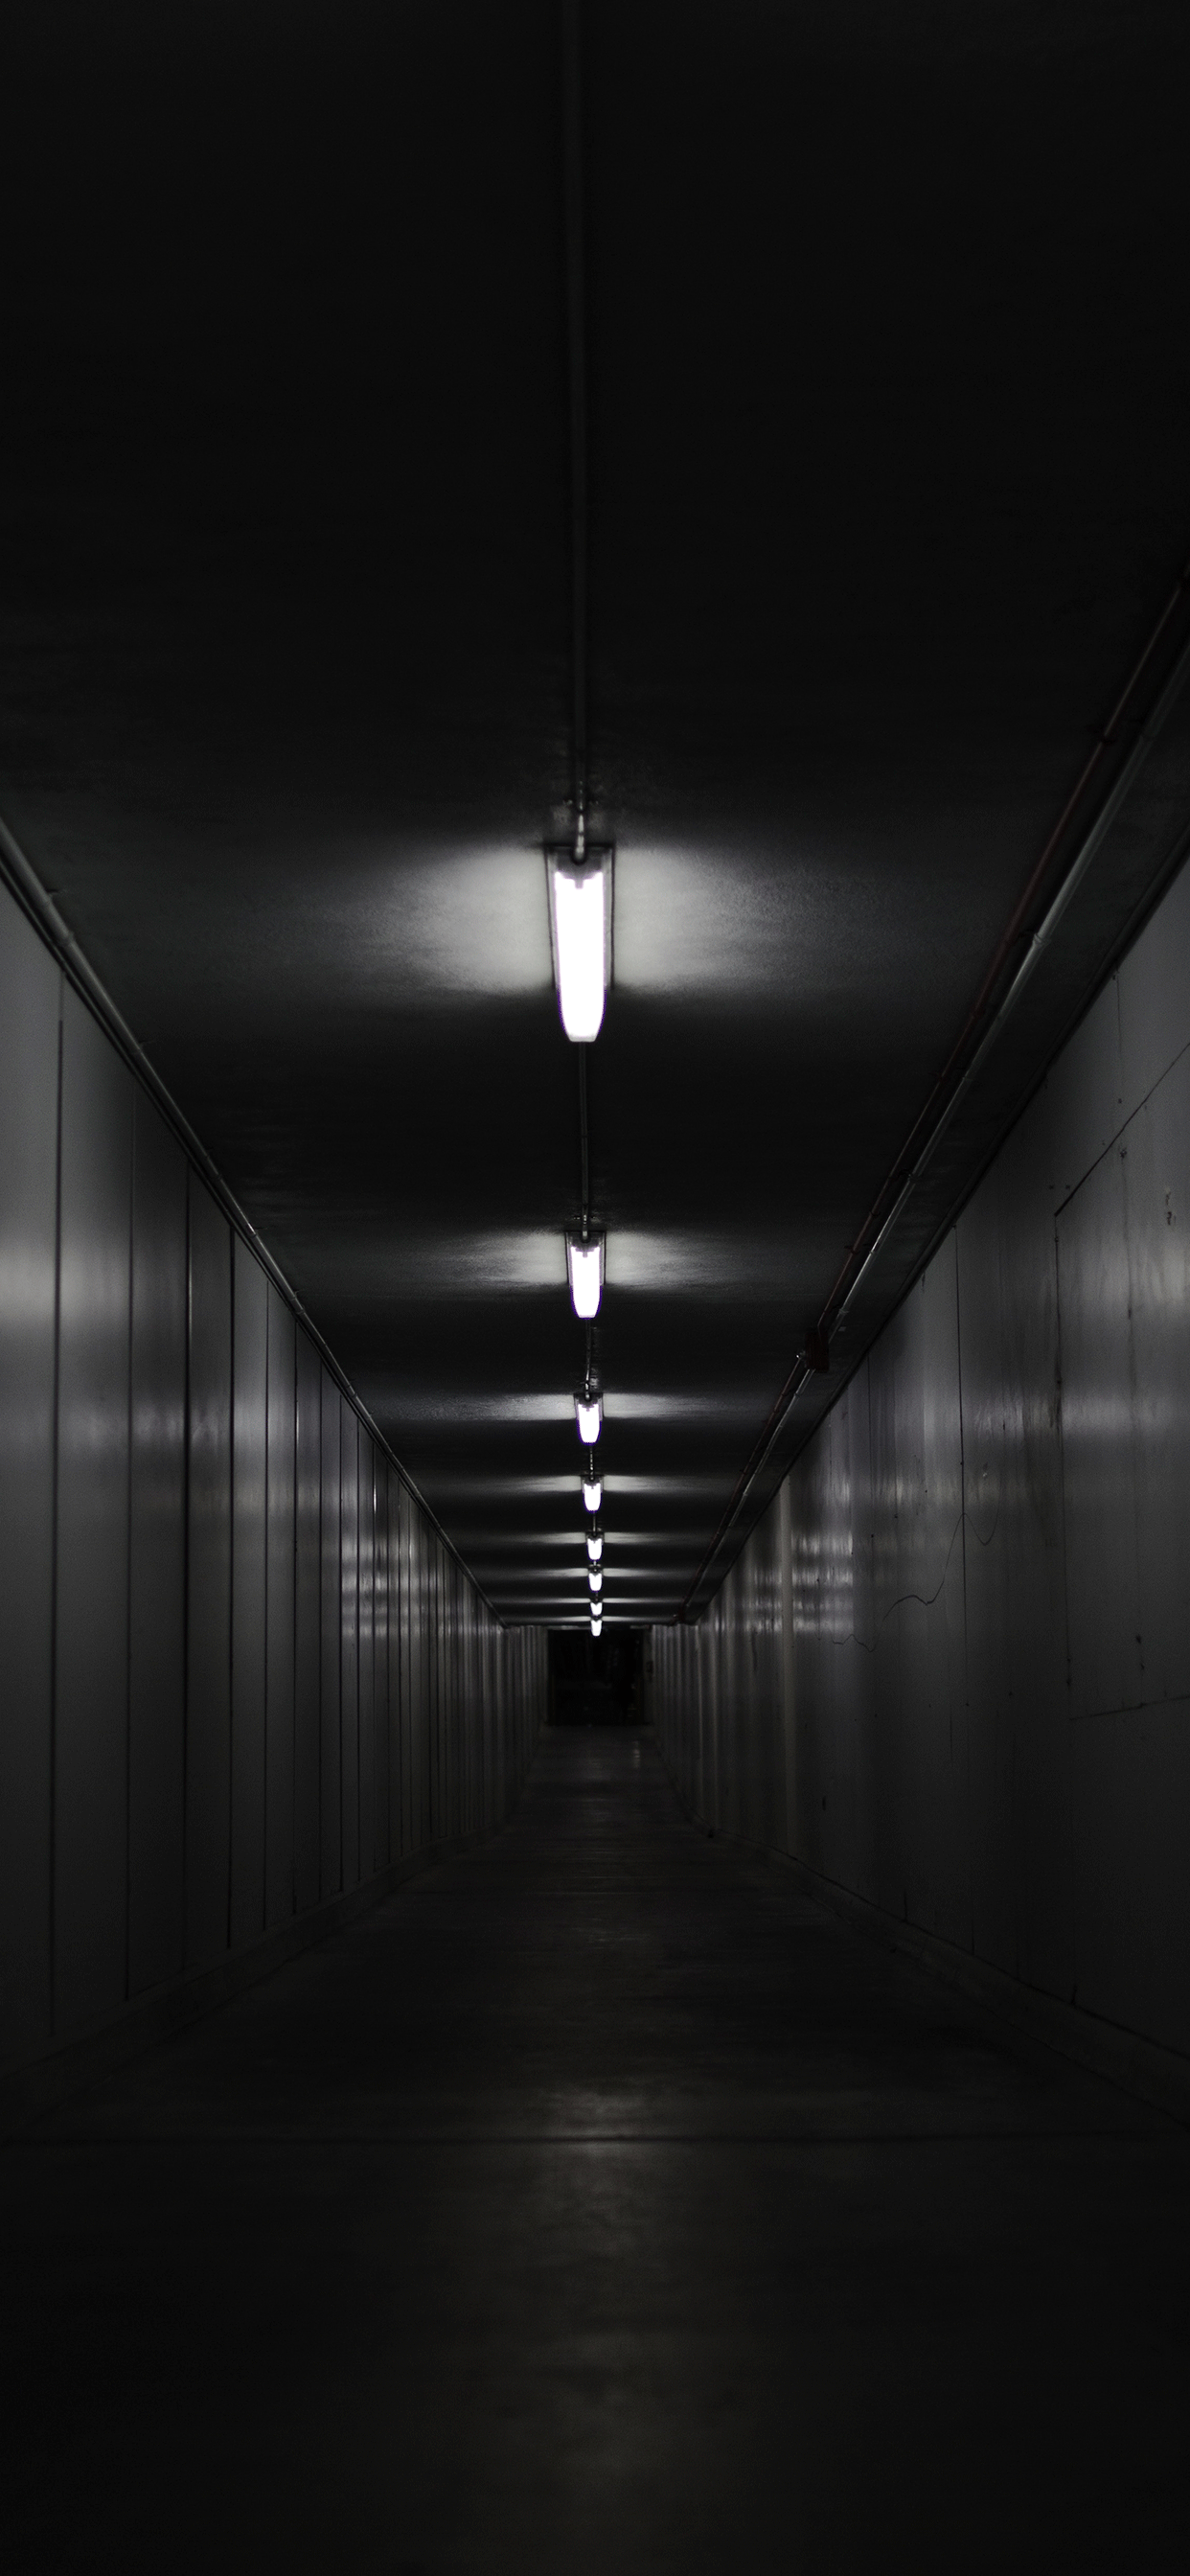 iPhone wallpapers dark hall Fonds d'écran iPhone du 12/06/2019